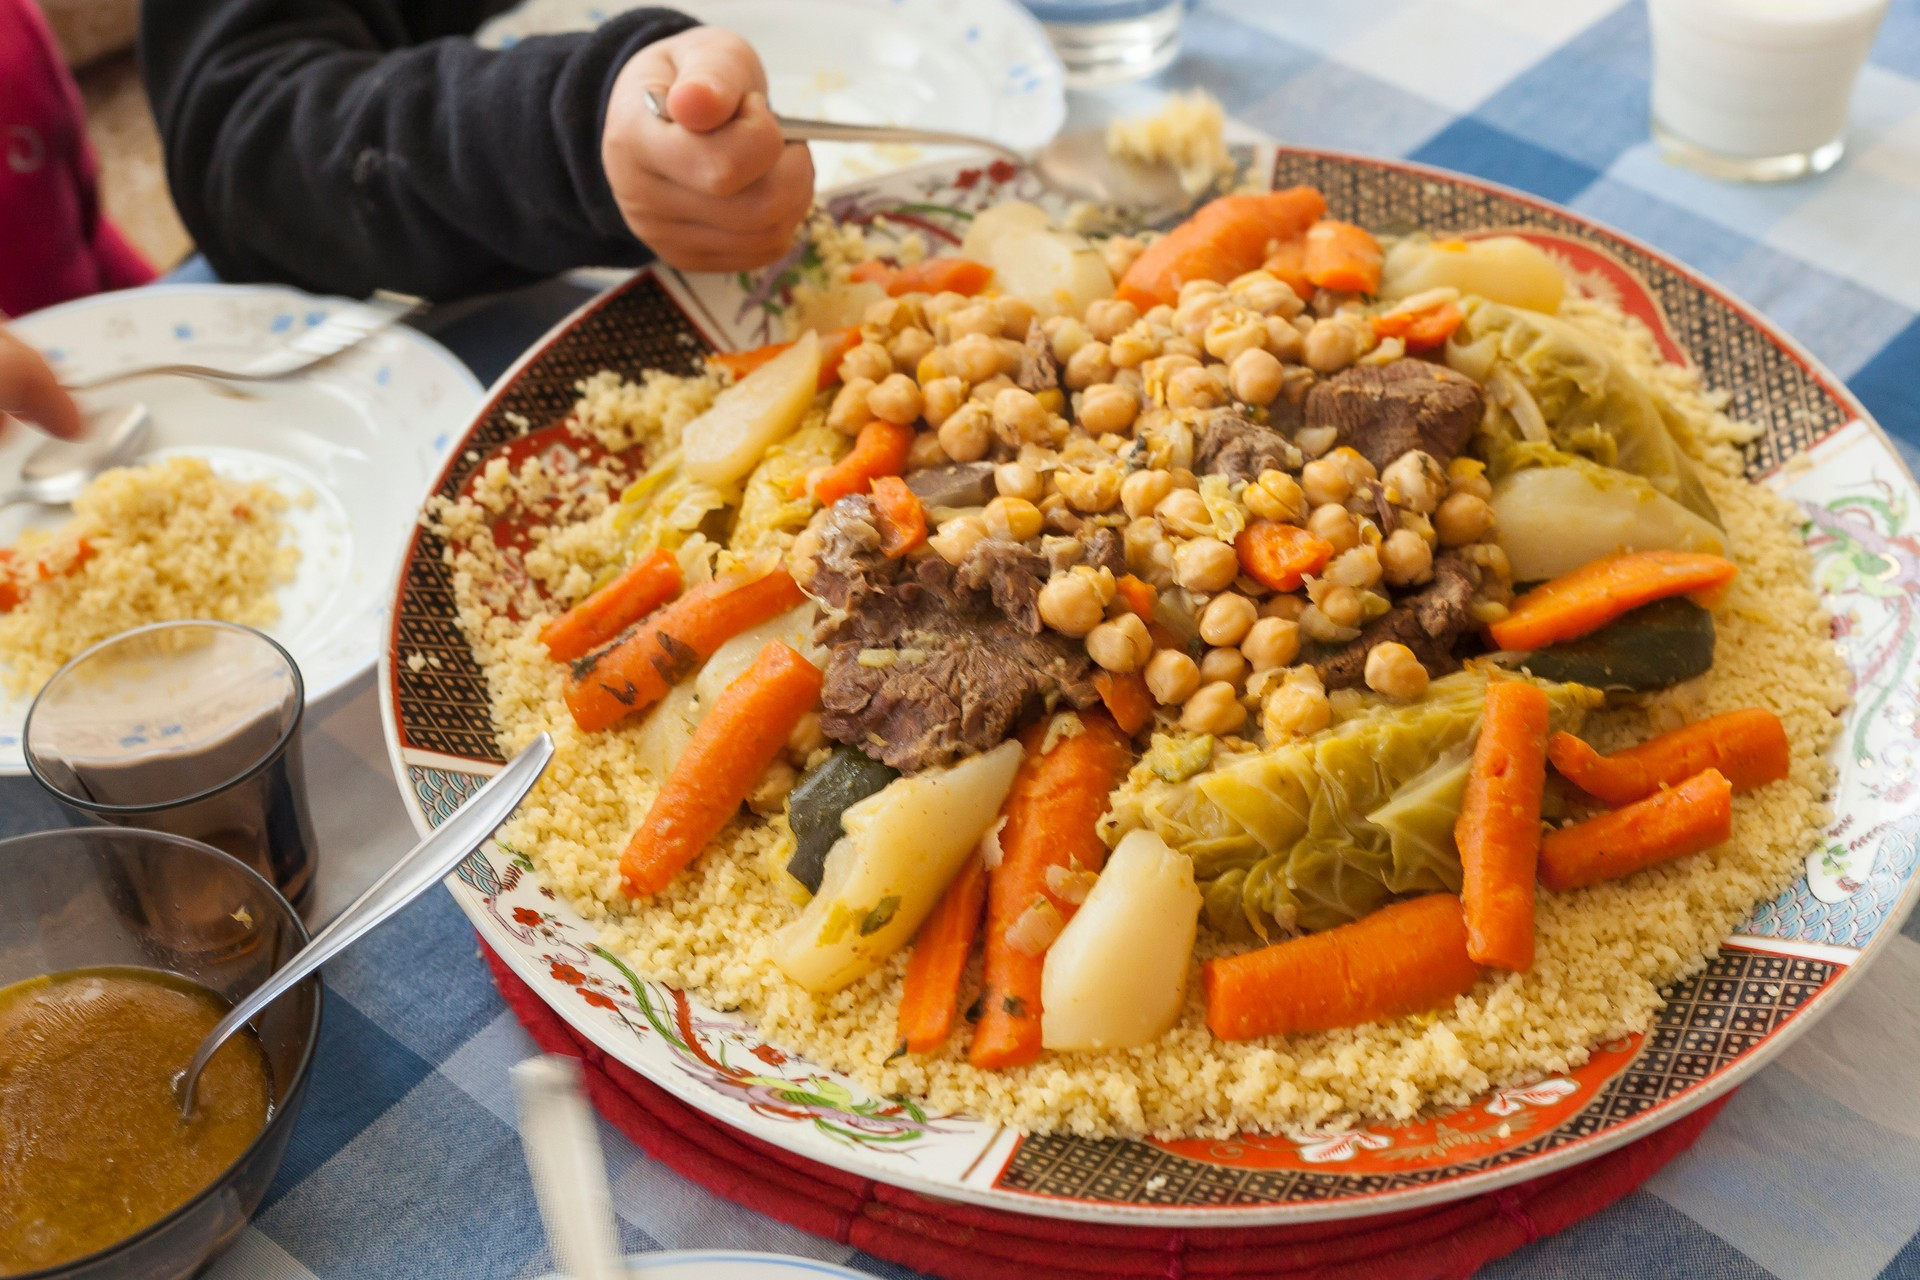 Morocco food tour - Couscous family meal